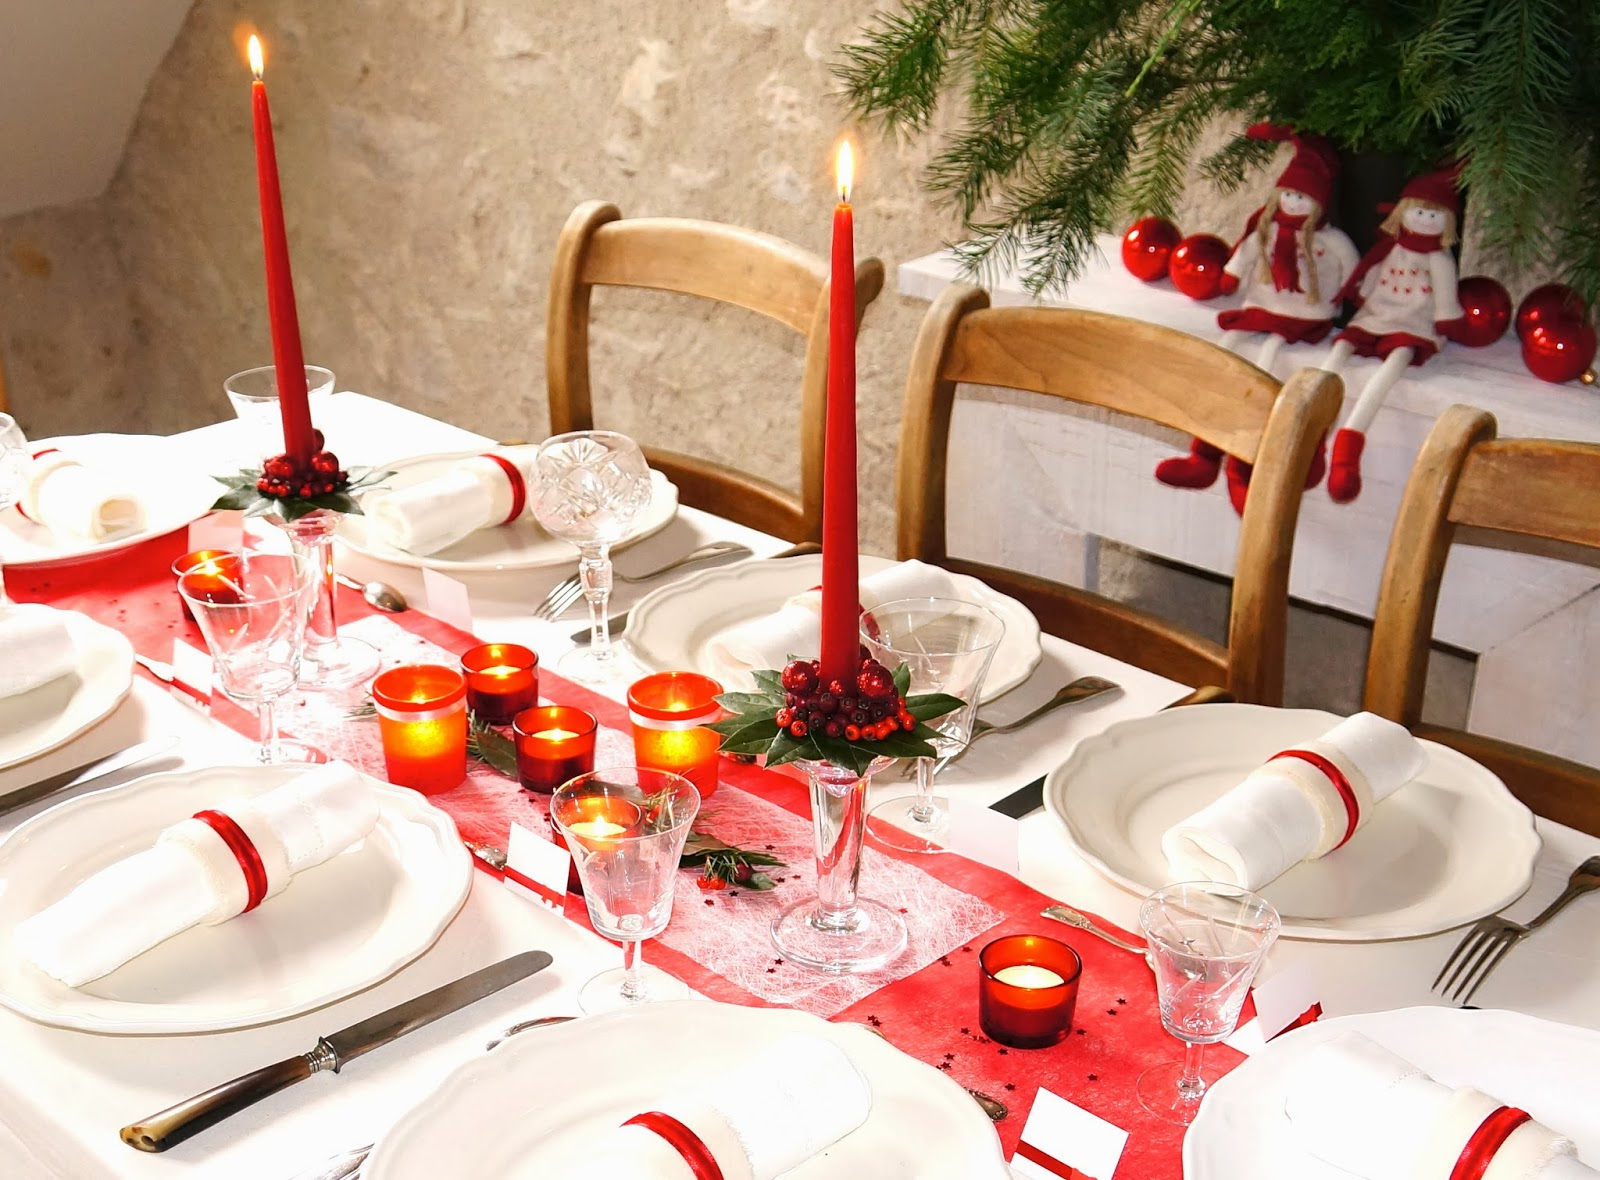 Decoration table noel pas cher images - Decoration de noel pas cher ...